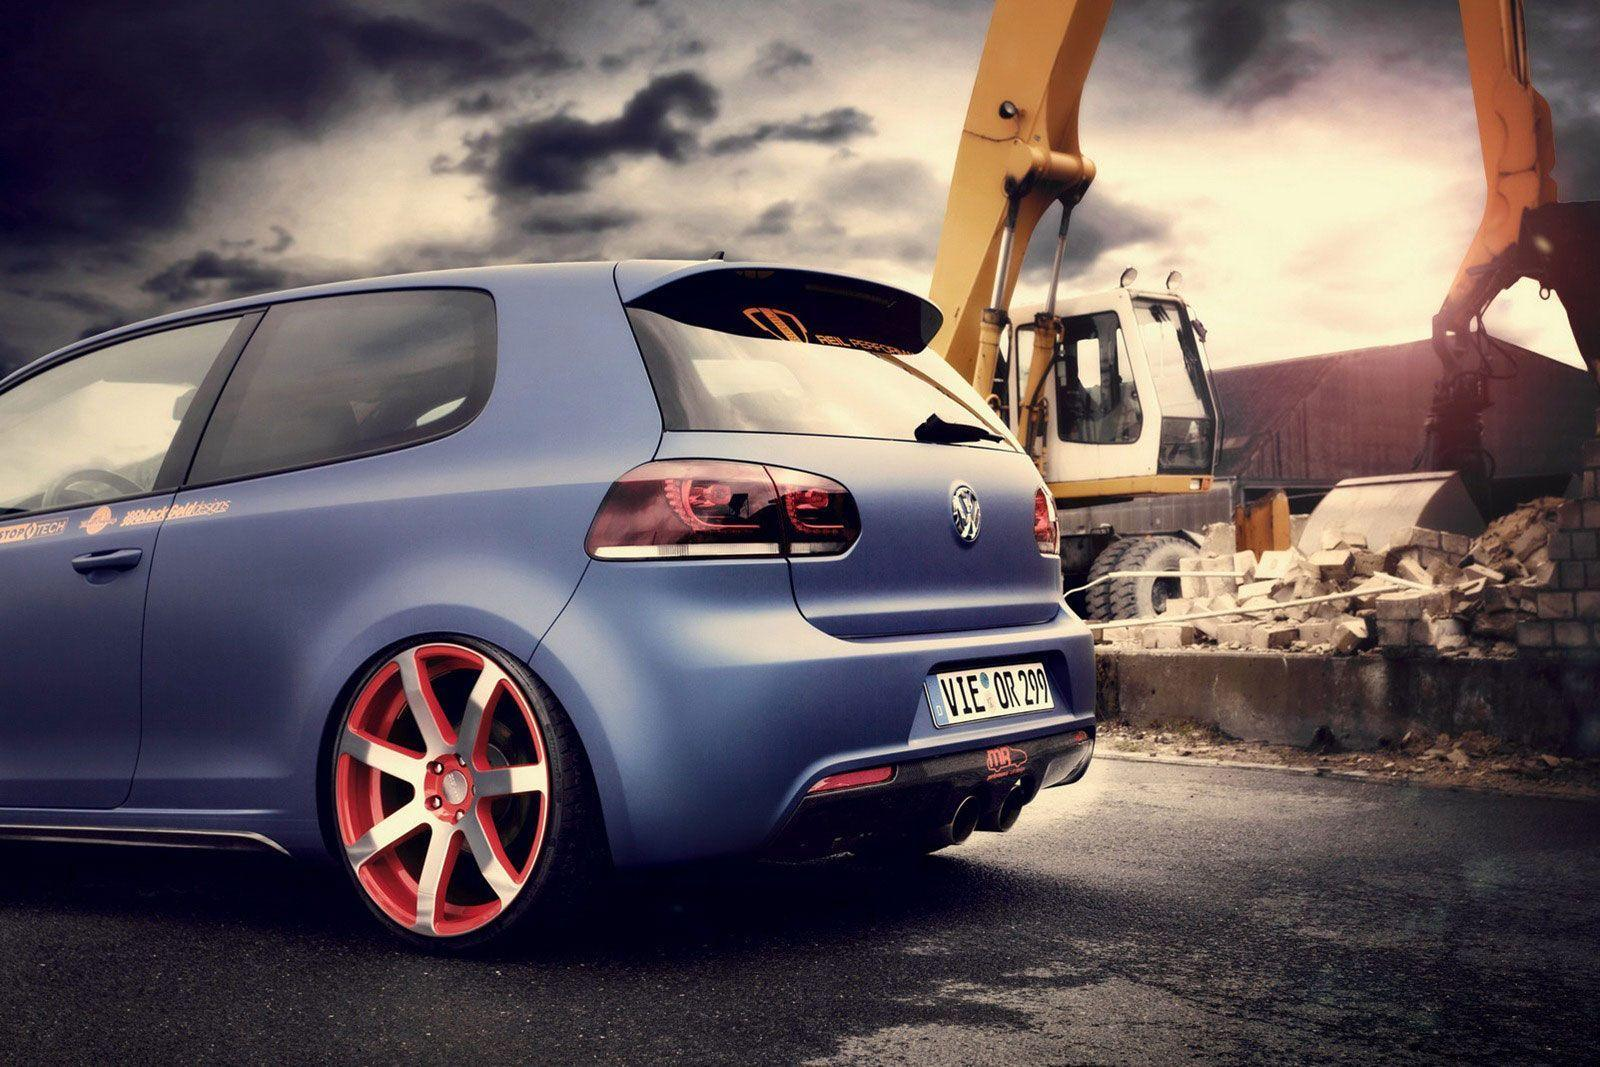 Image For > Vw Golf Gti Wallpapers